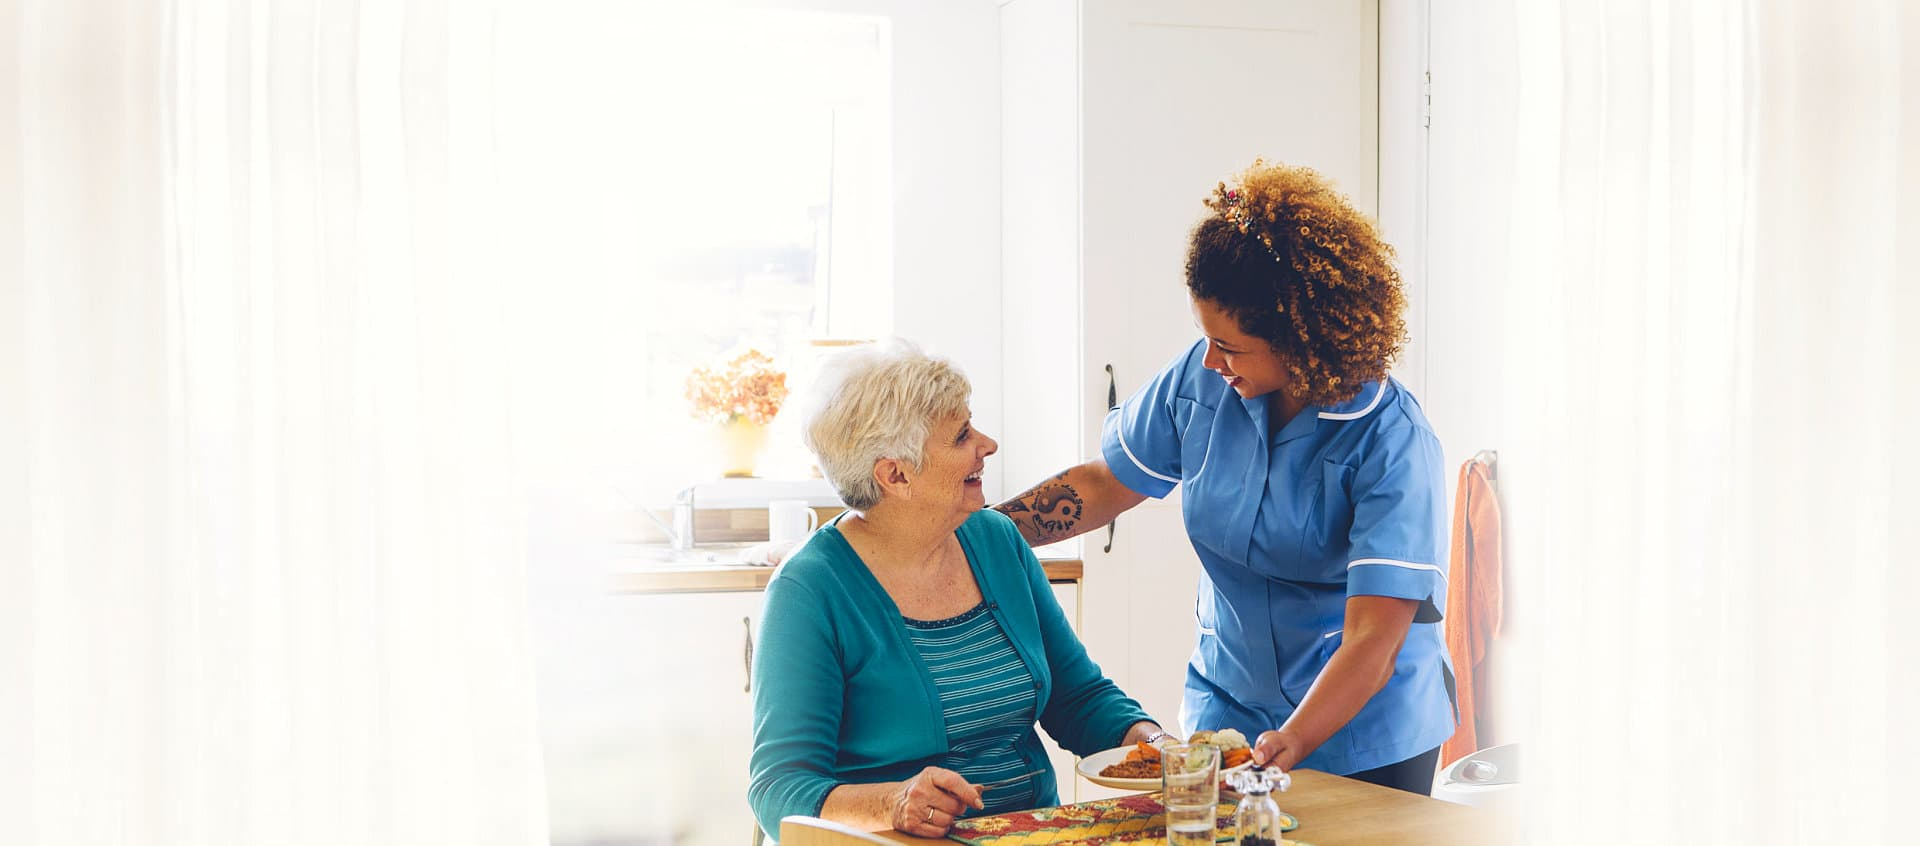 caregiver assisting patient in eating her meal